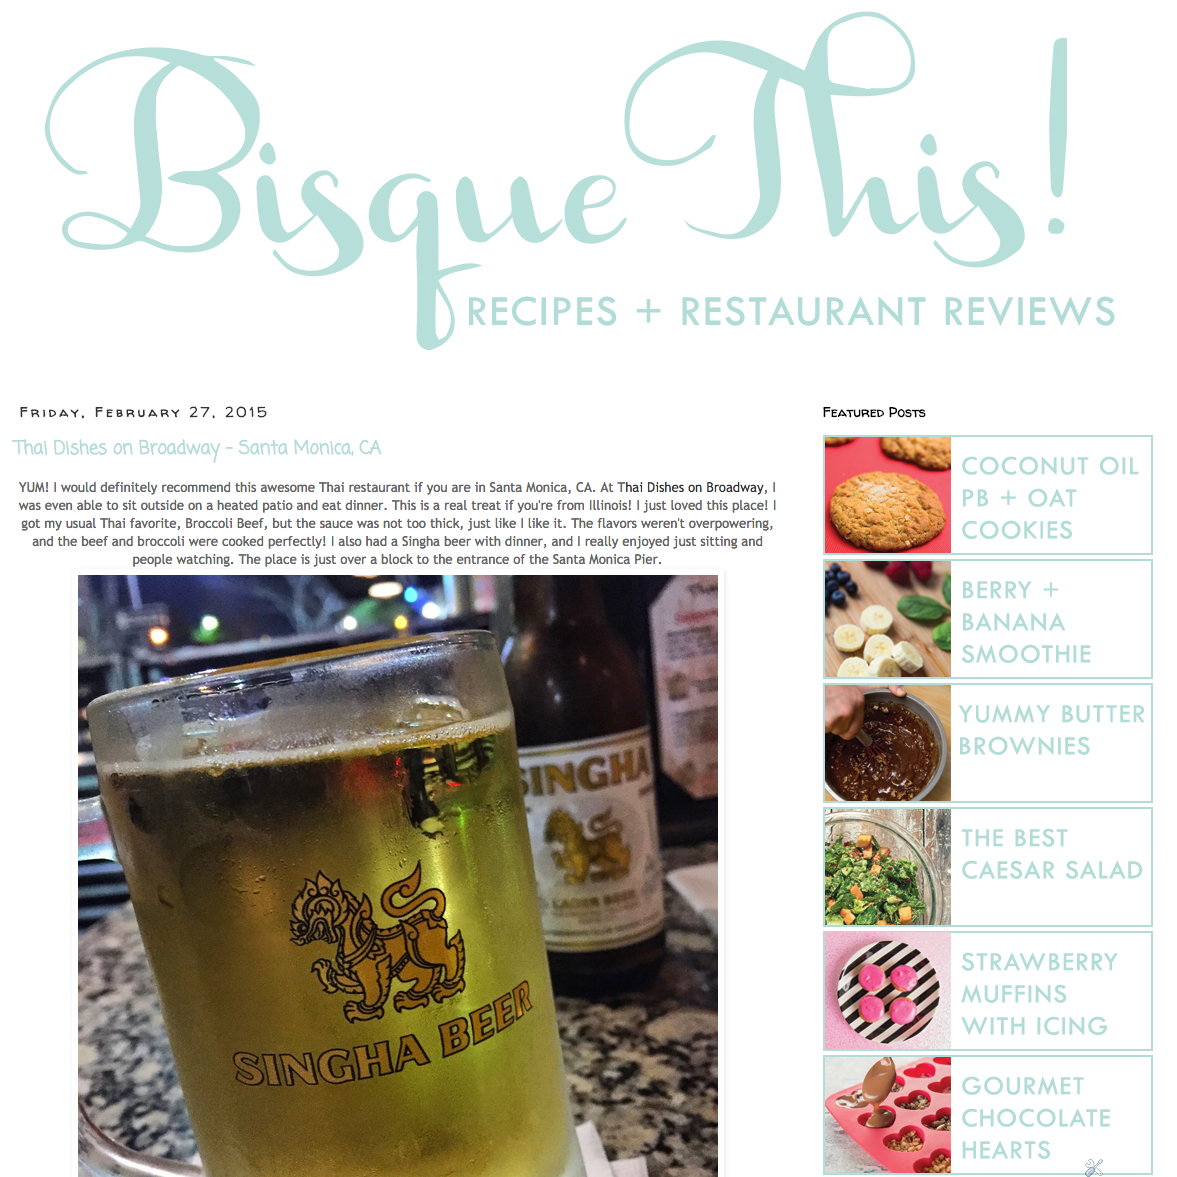 Bisque This!   Feb 27, 2015